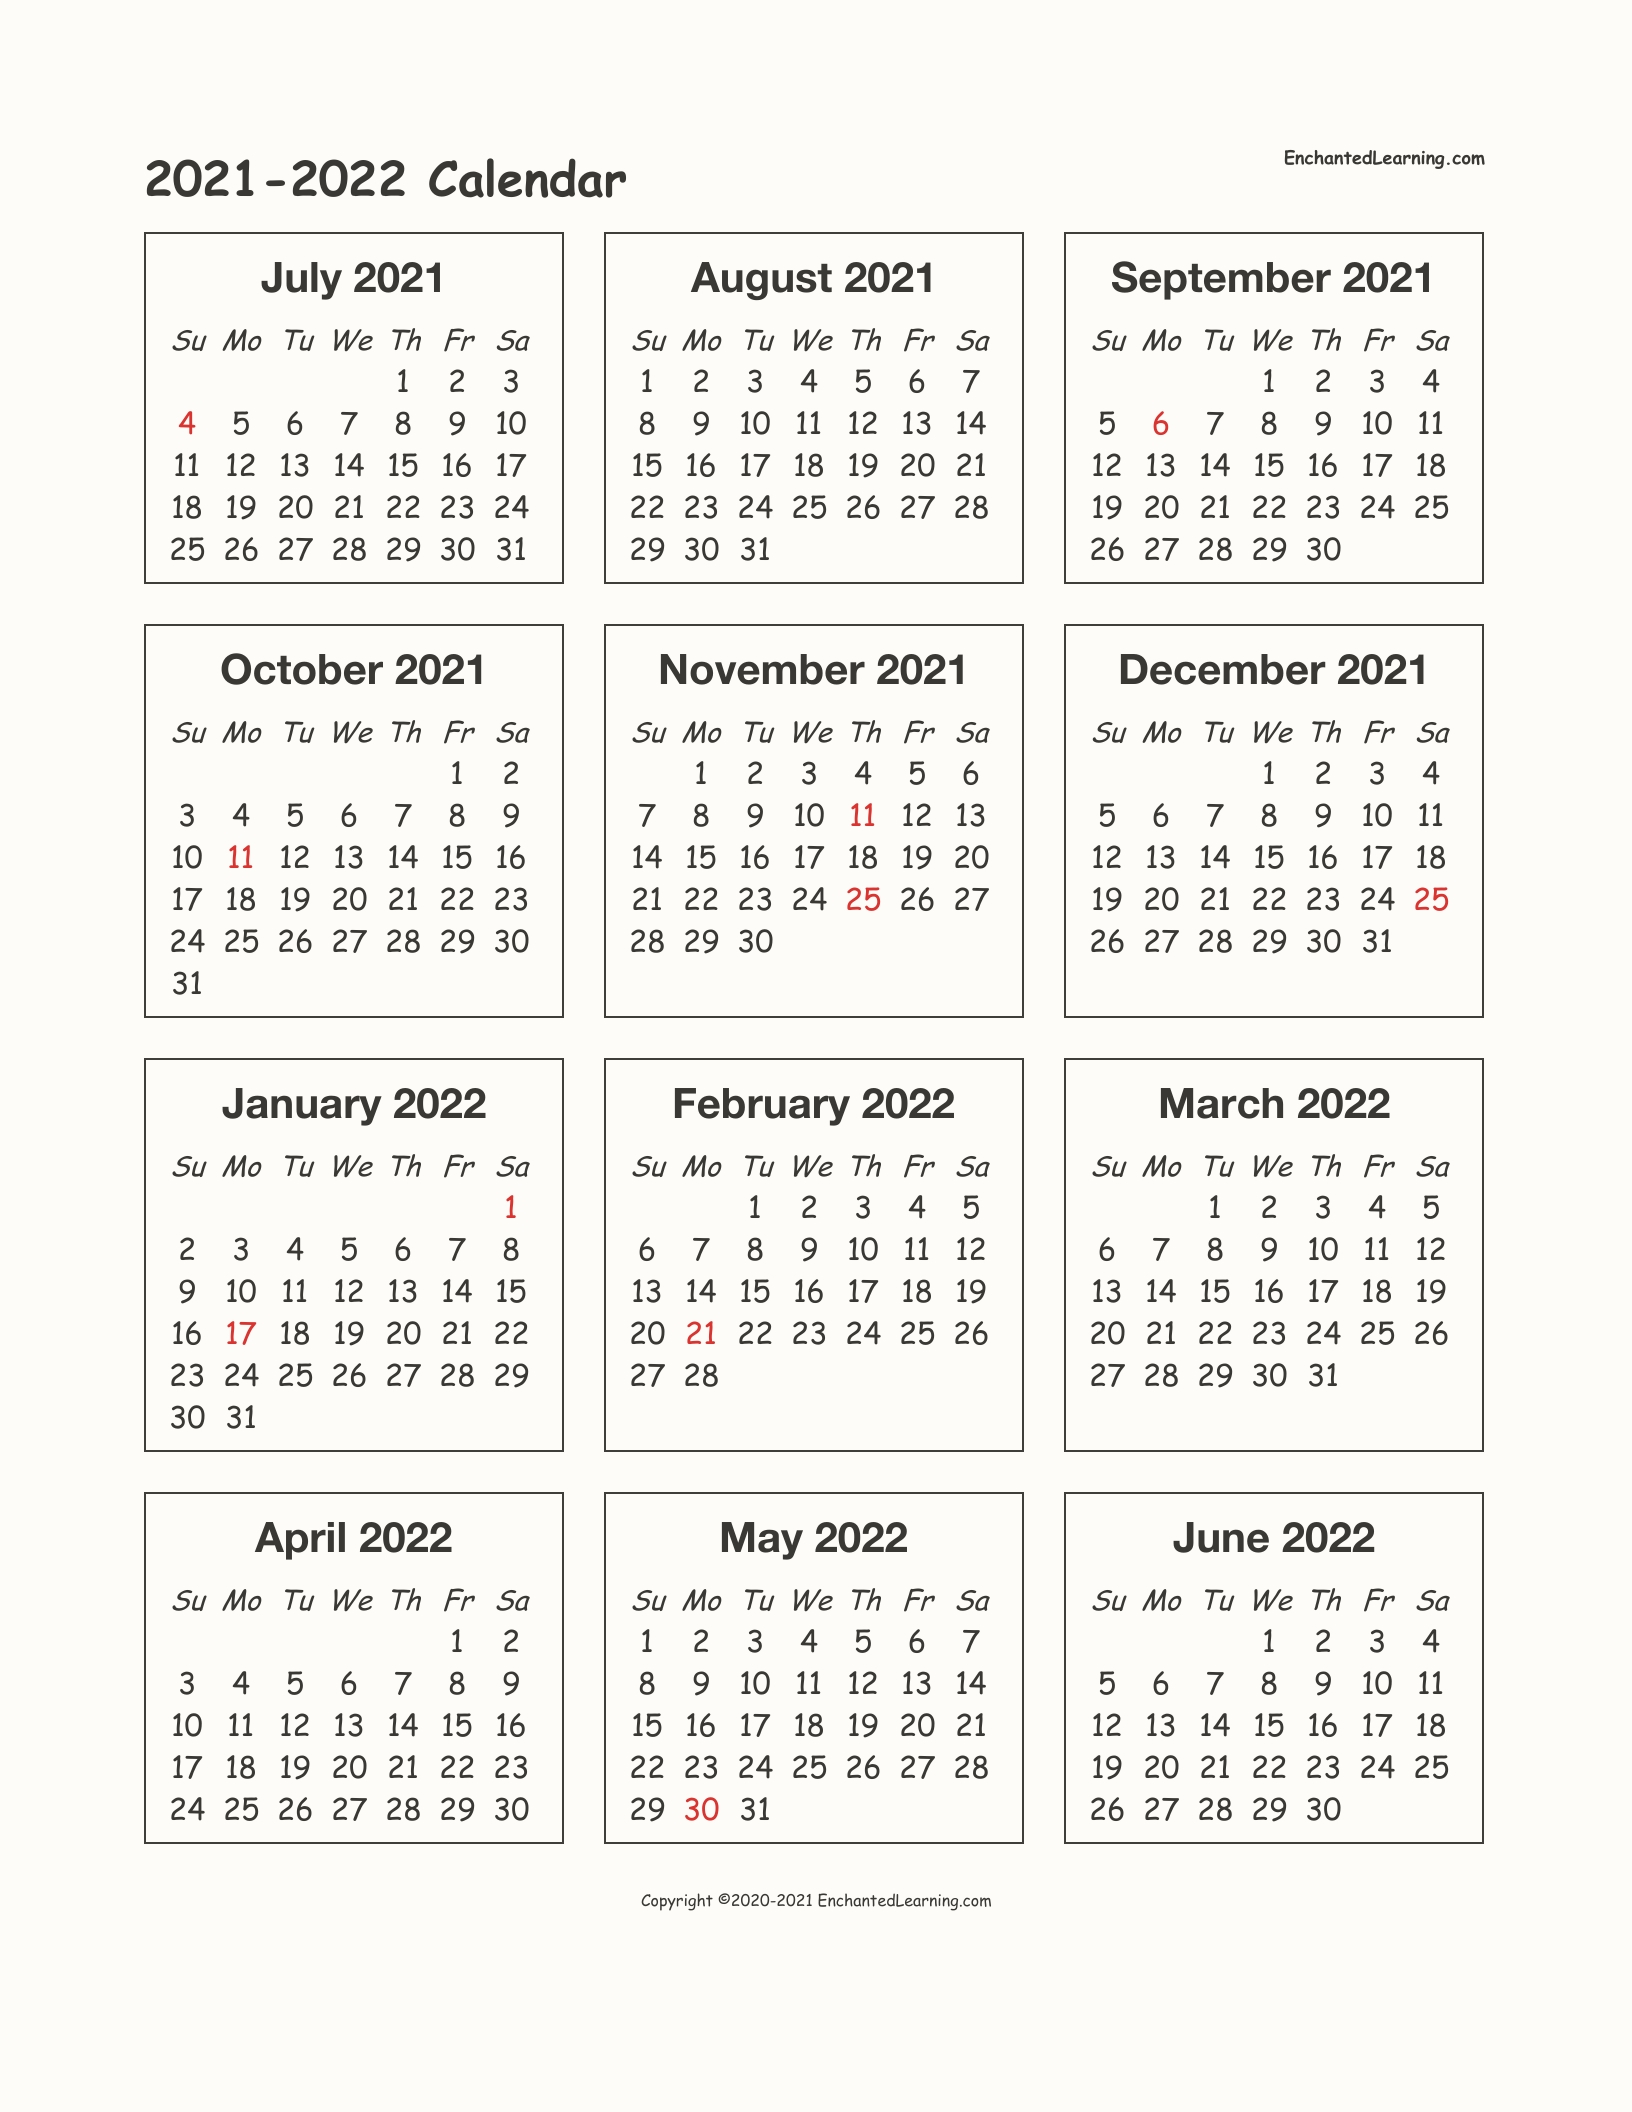 2021-2022 School-Year One-Page Calendar - Enchanted Learning for 3 Year Calendar 2021 2021 2022